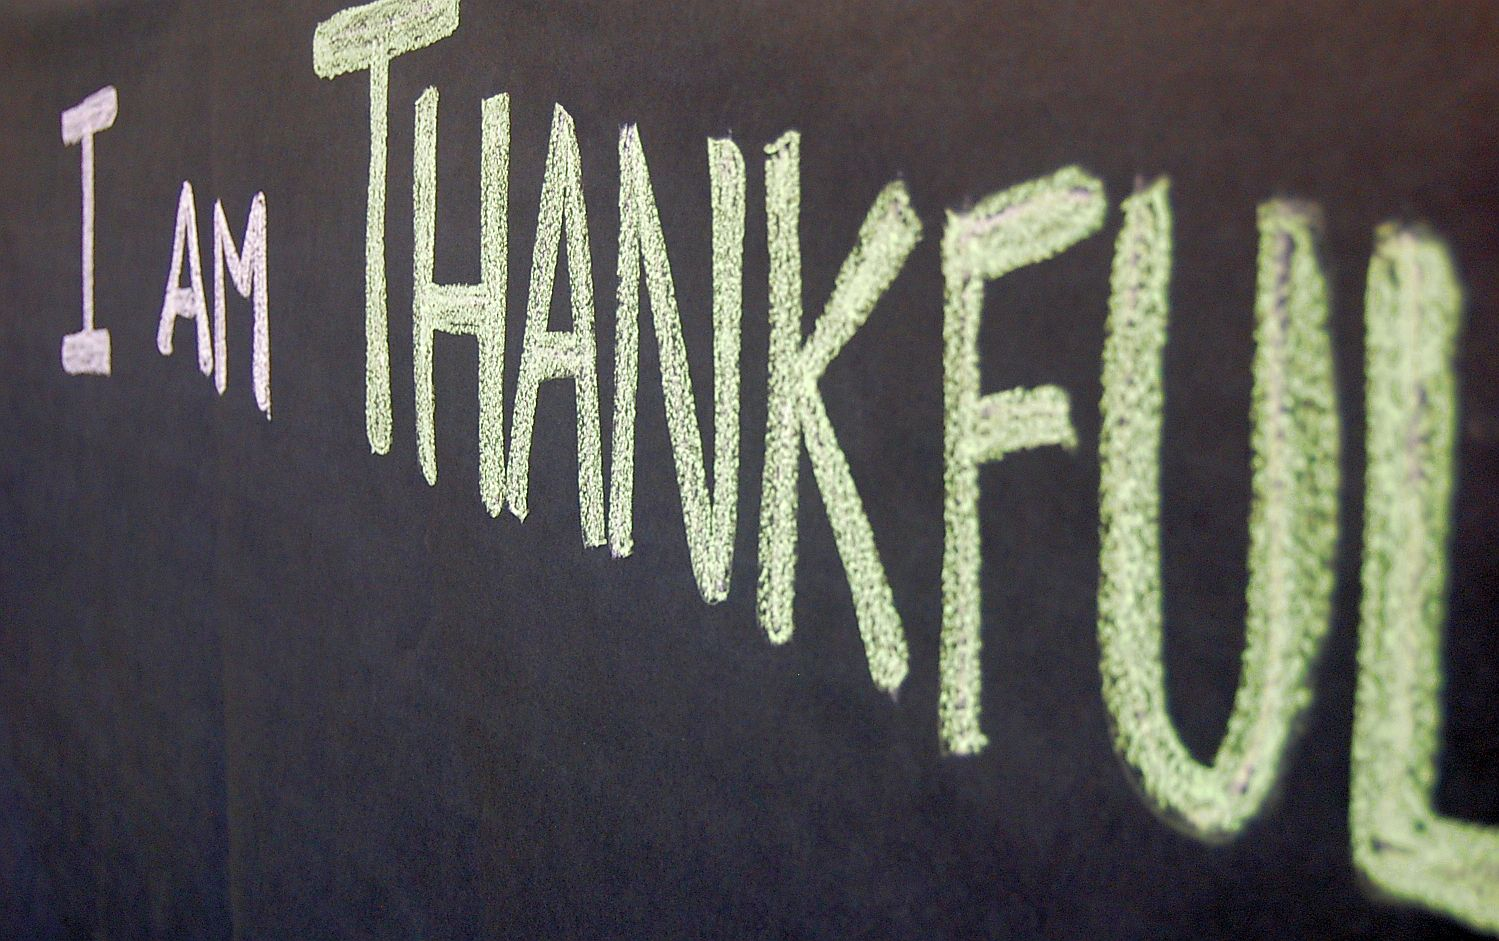 I Am Thankful on Chalkboard